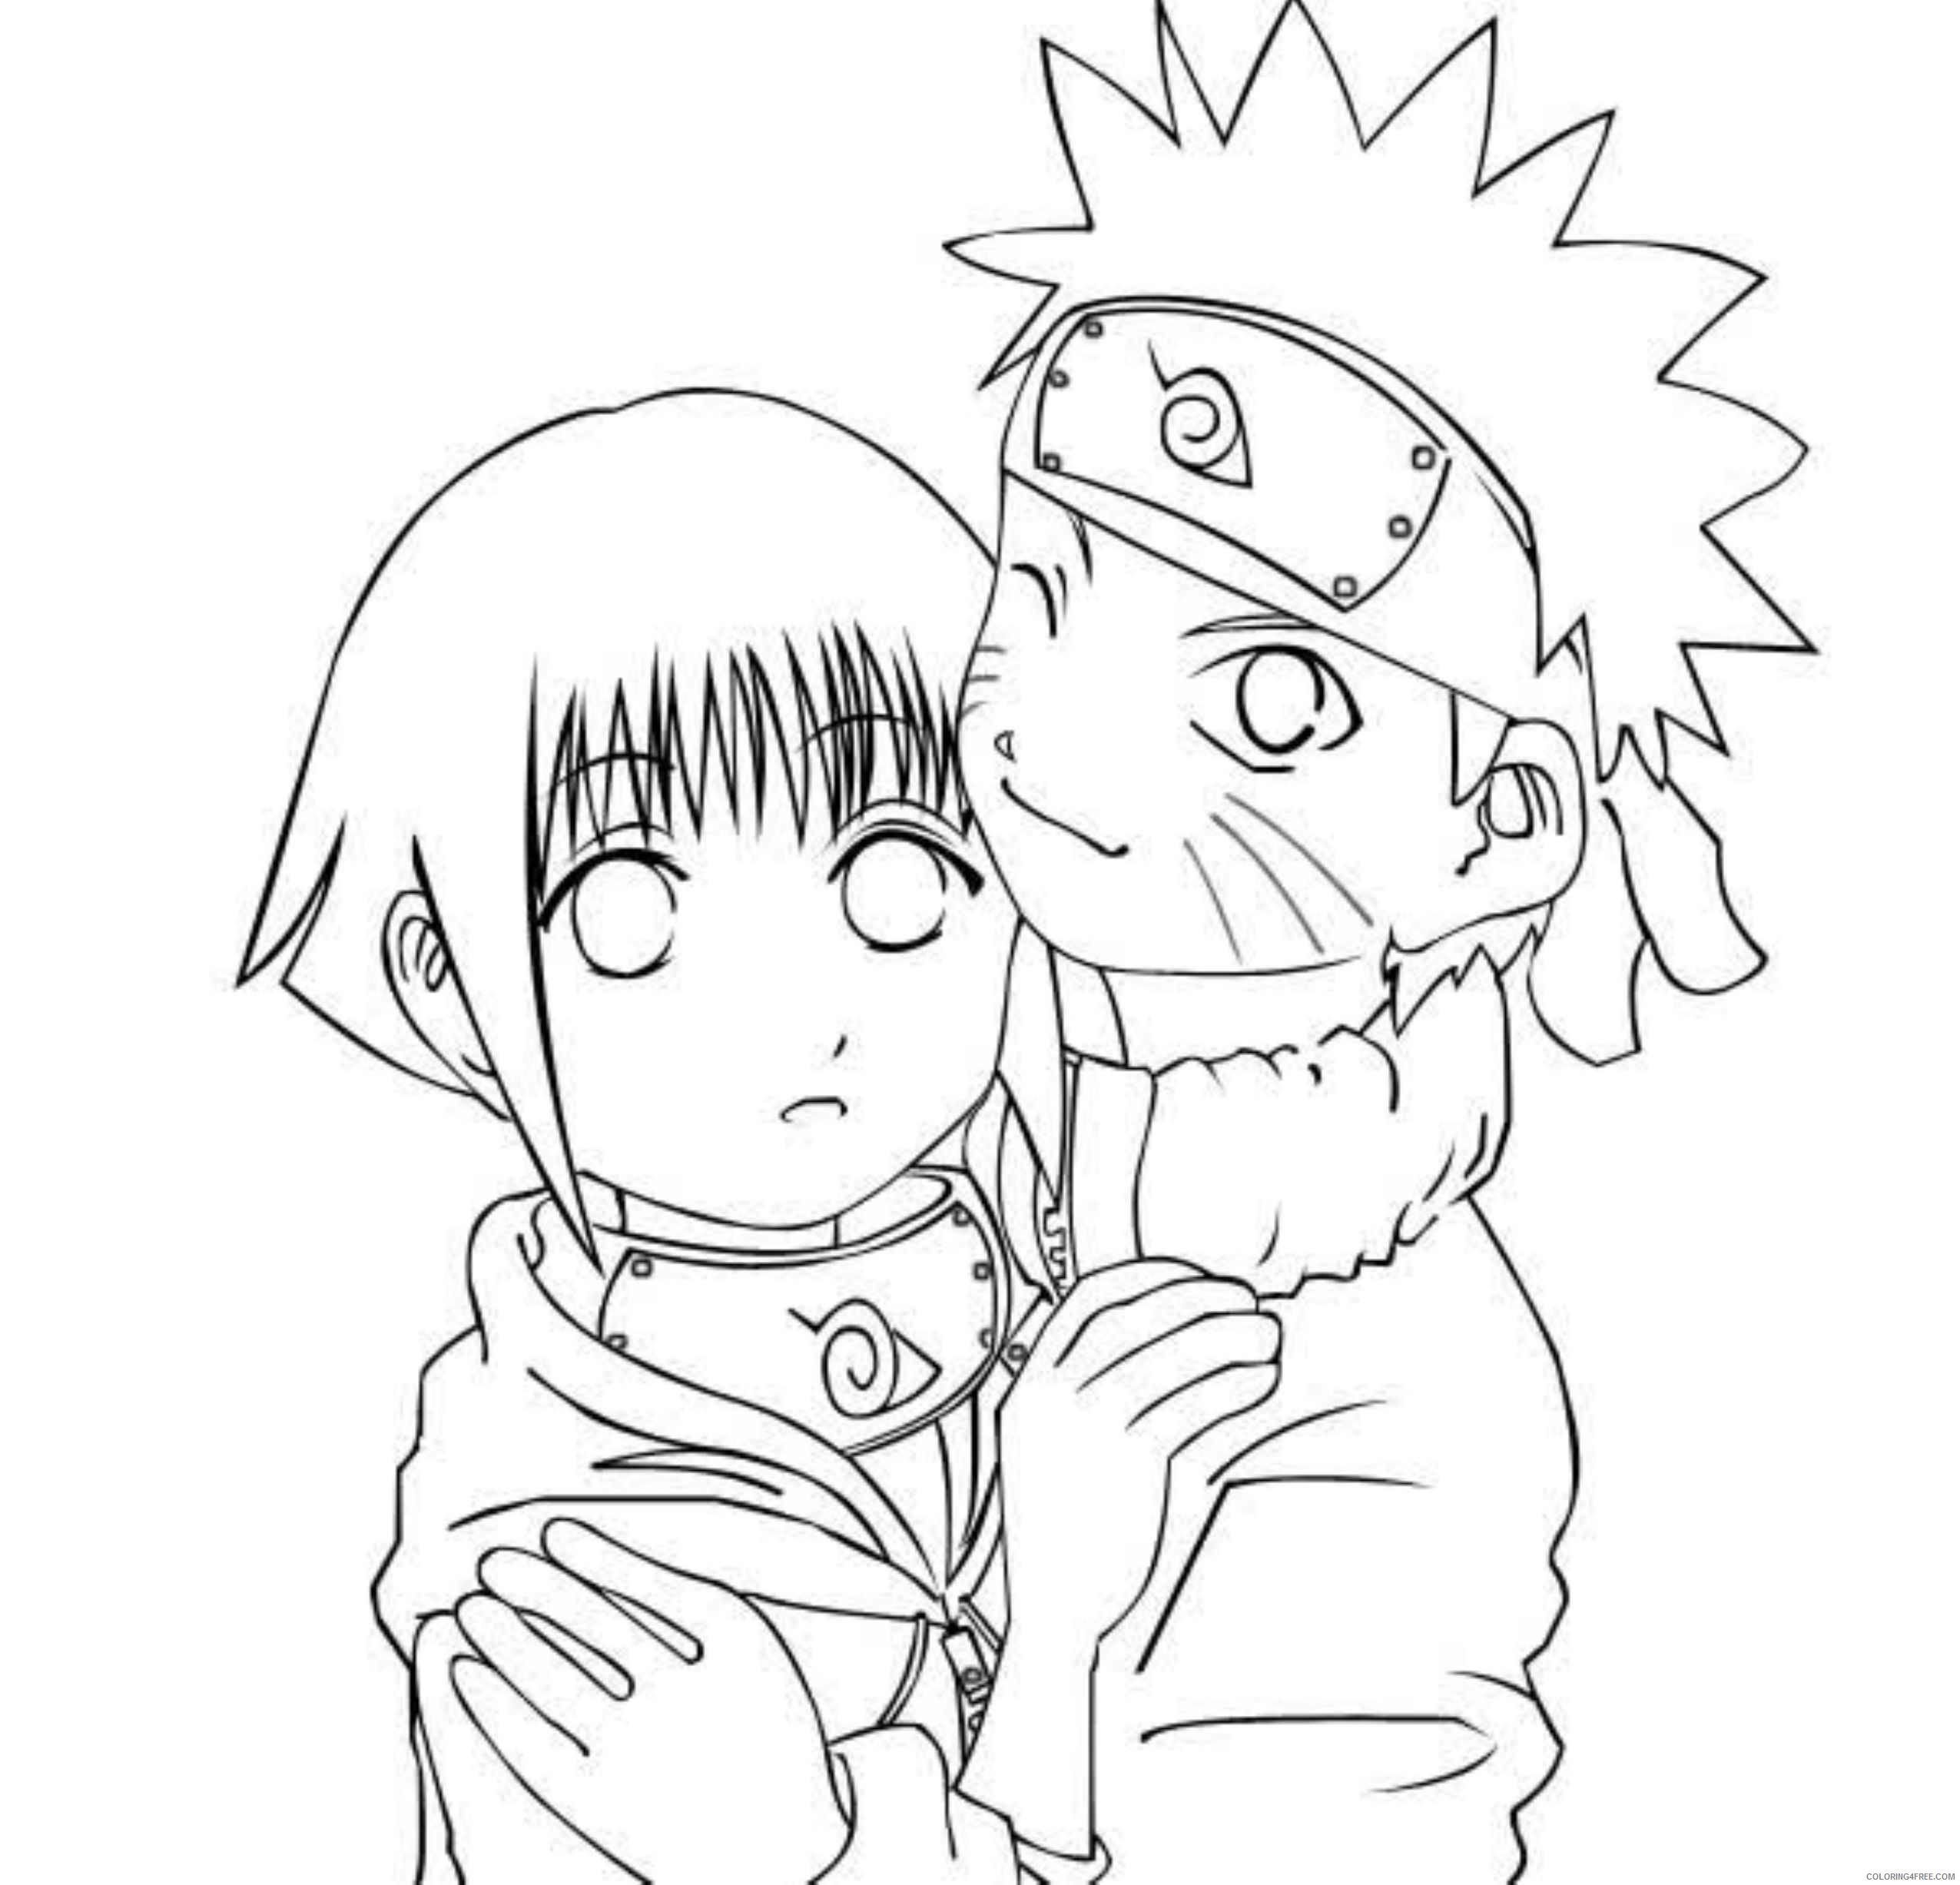 Naruto team 7 coloring pages | 2453x2551